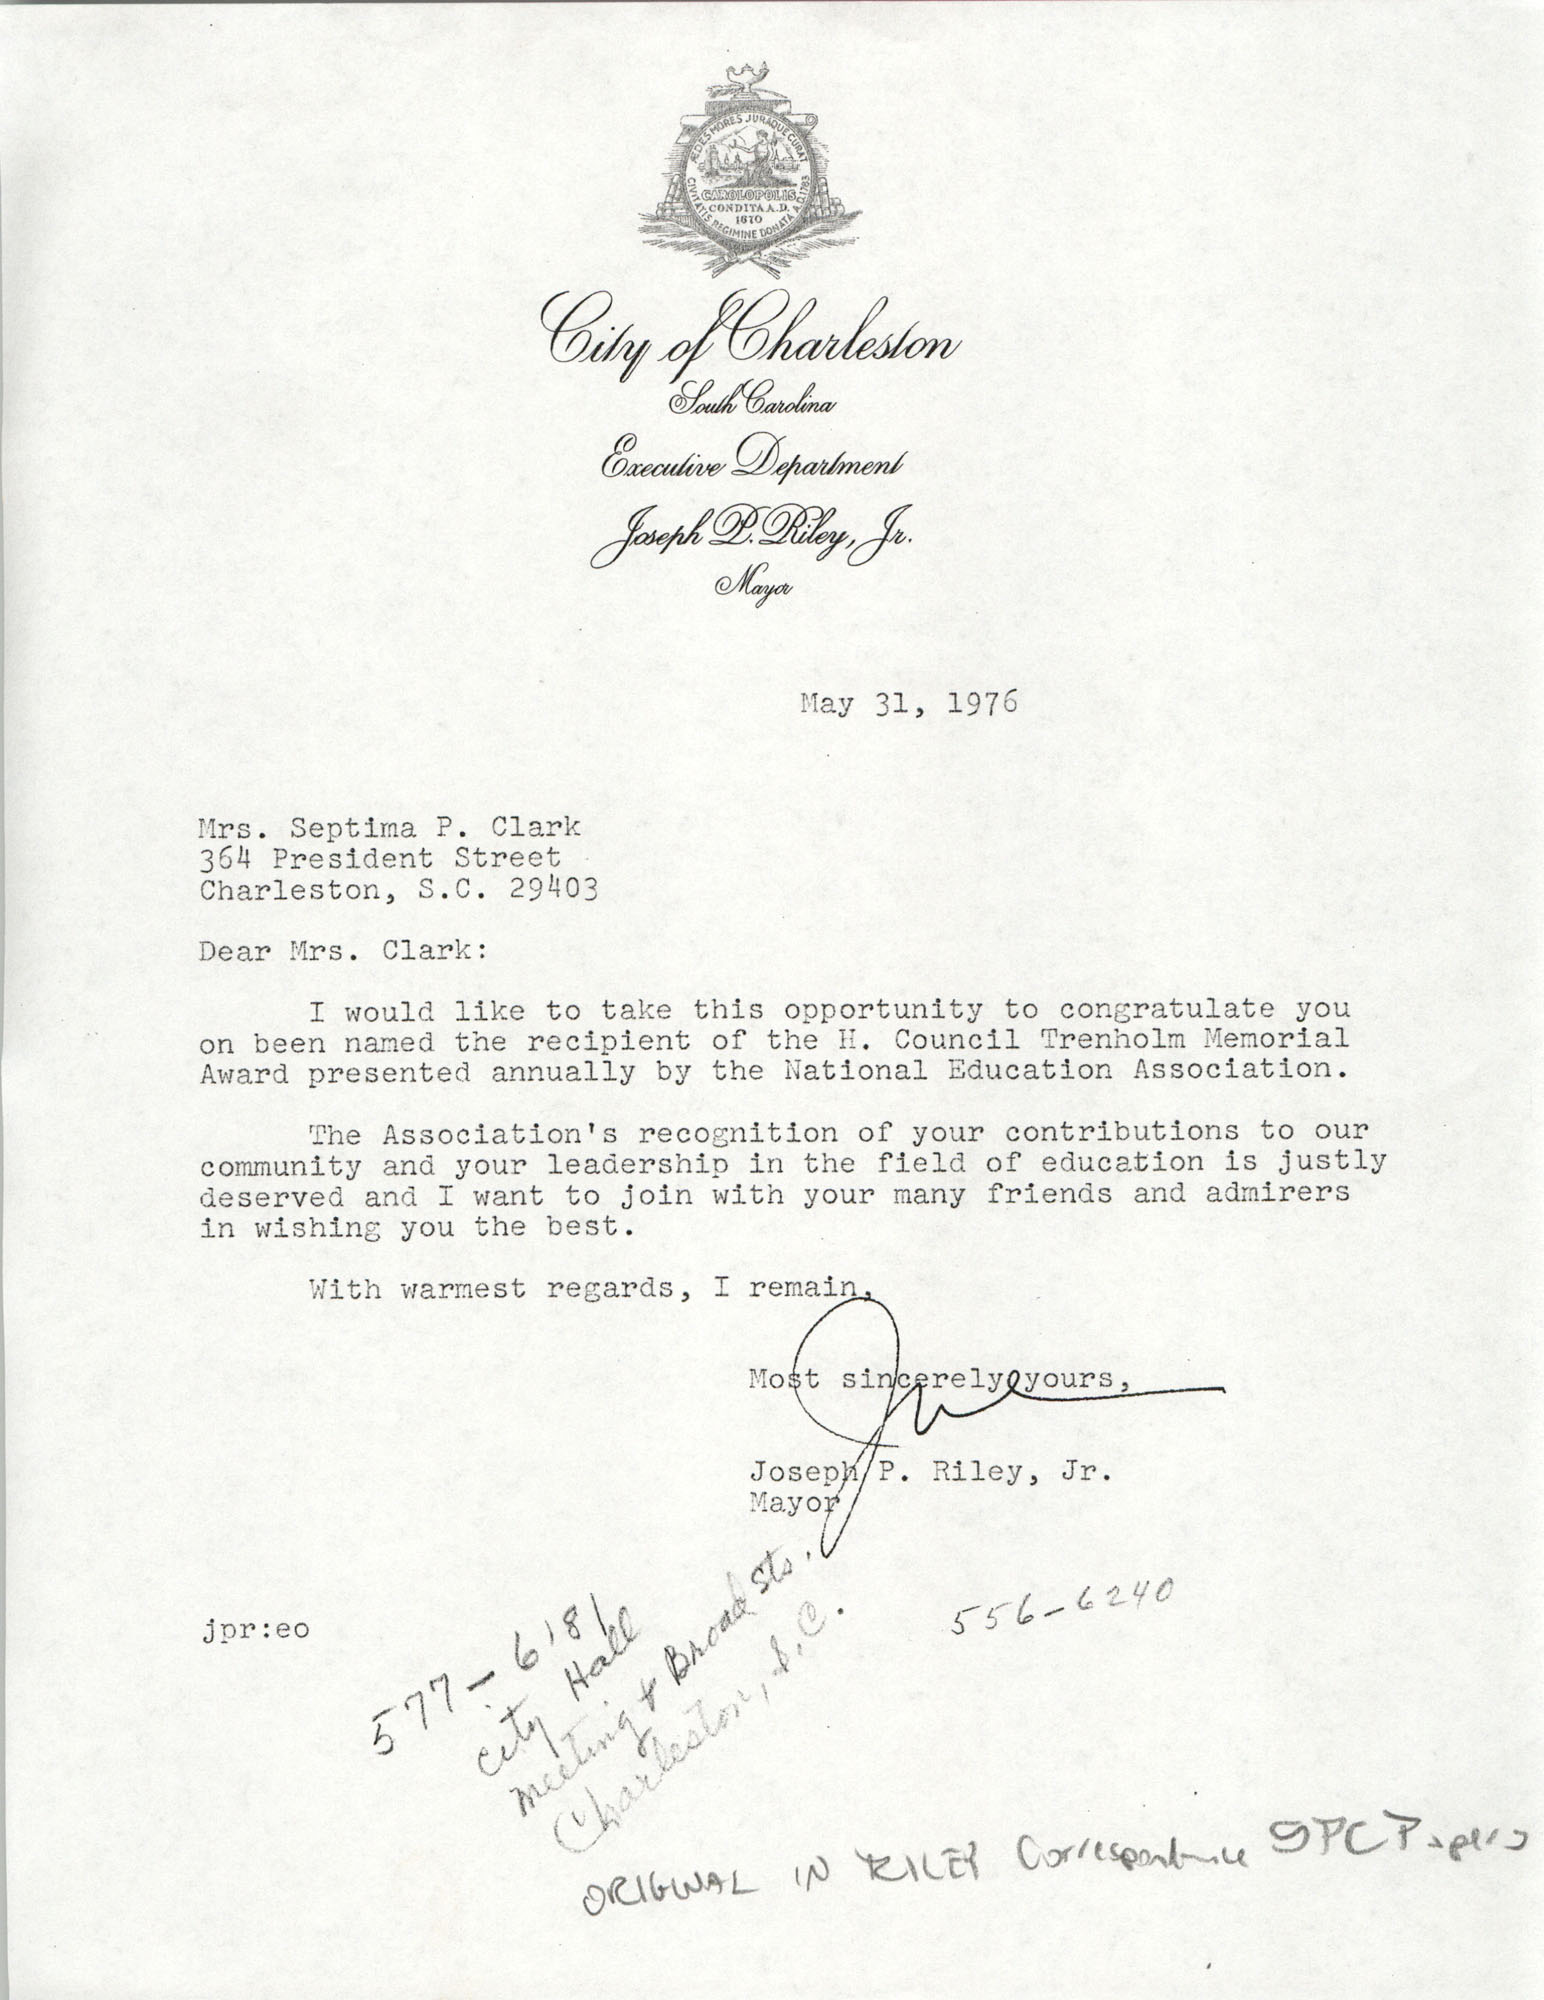 Letter from City of Charleston Mayor, Joseph P. Riley, Jr., to Septima P. Clark, May 31, 1976